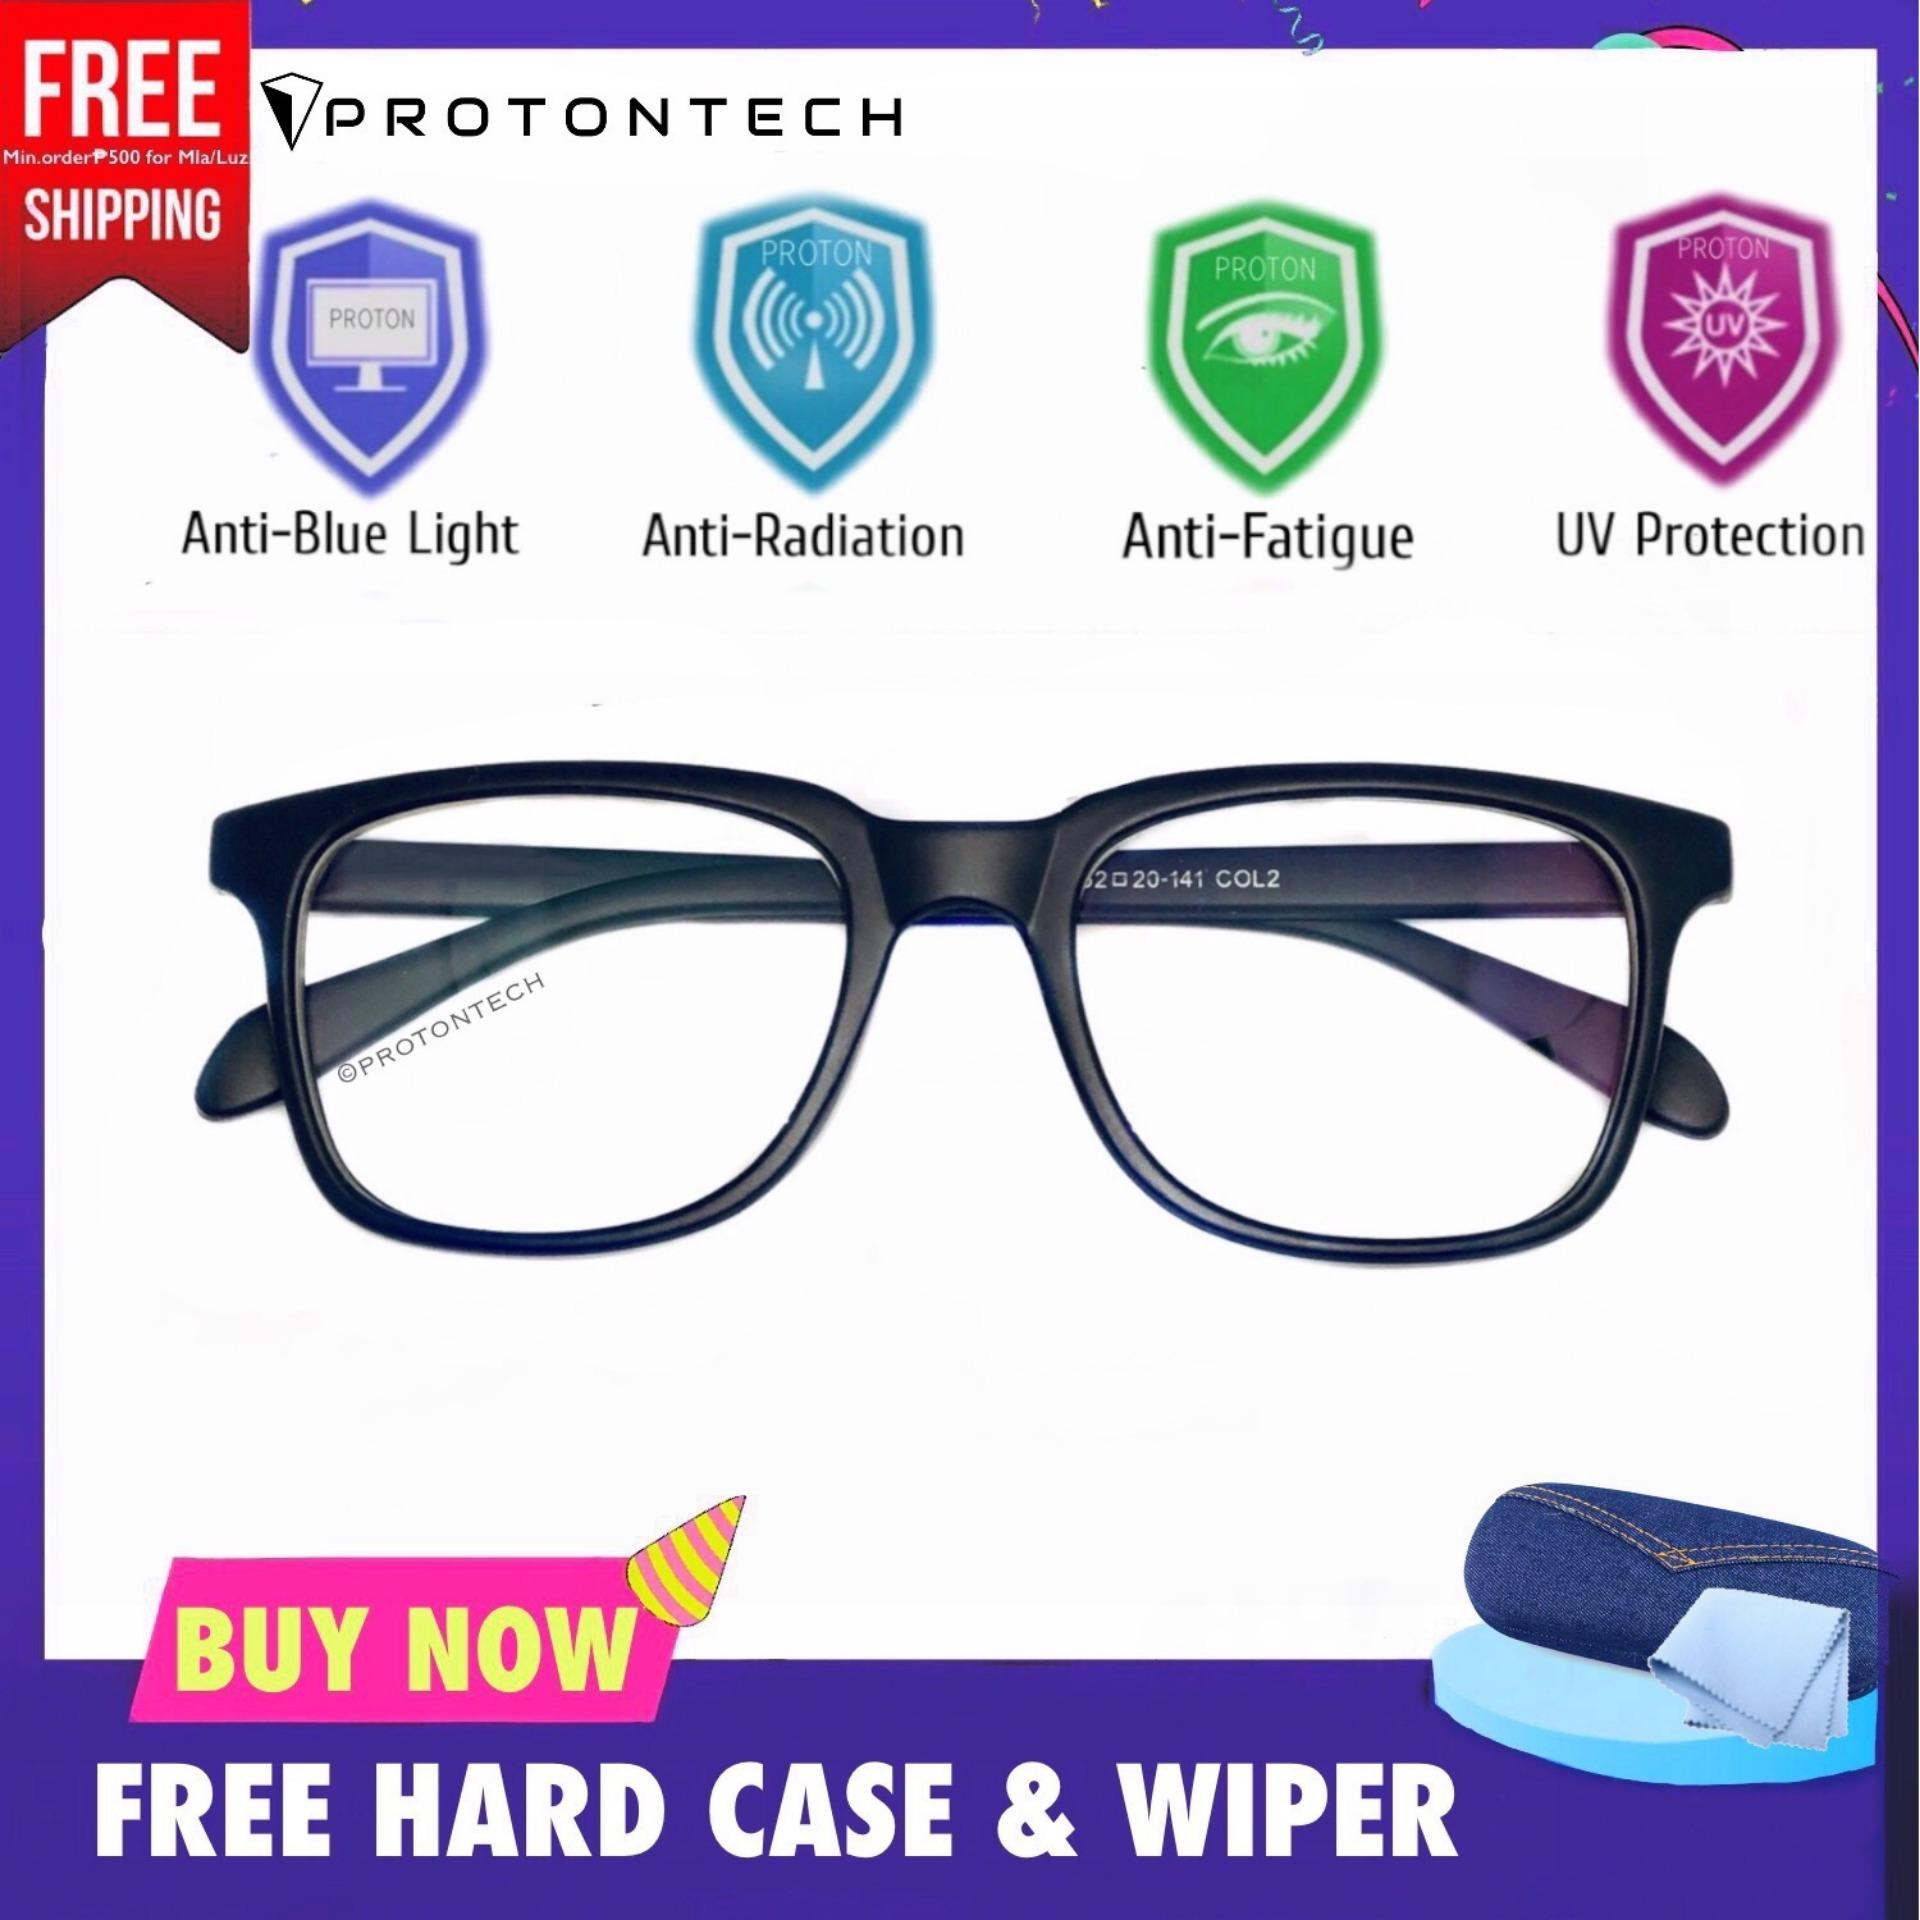 06b24b0f6e29 Neo 03 Anti Radiation Computer Eyeglasses by Proton - Replaceable Lens